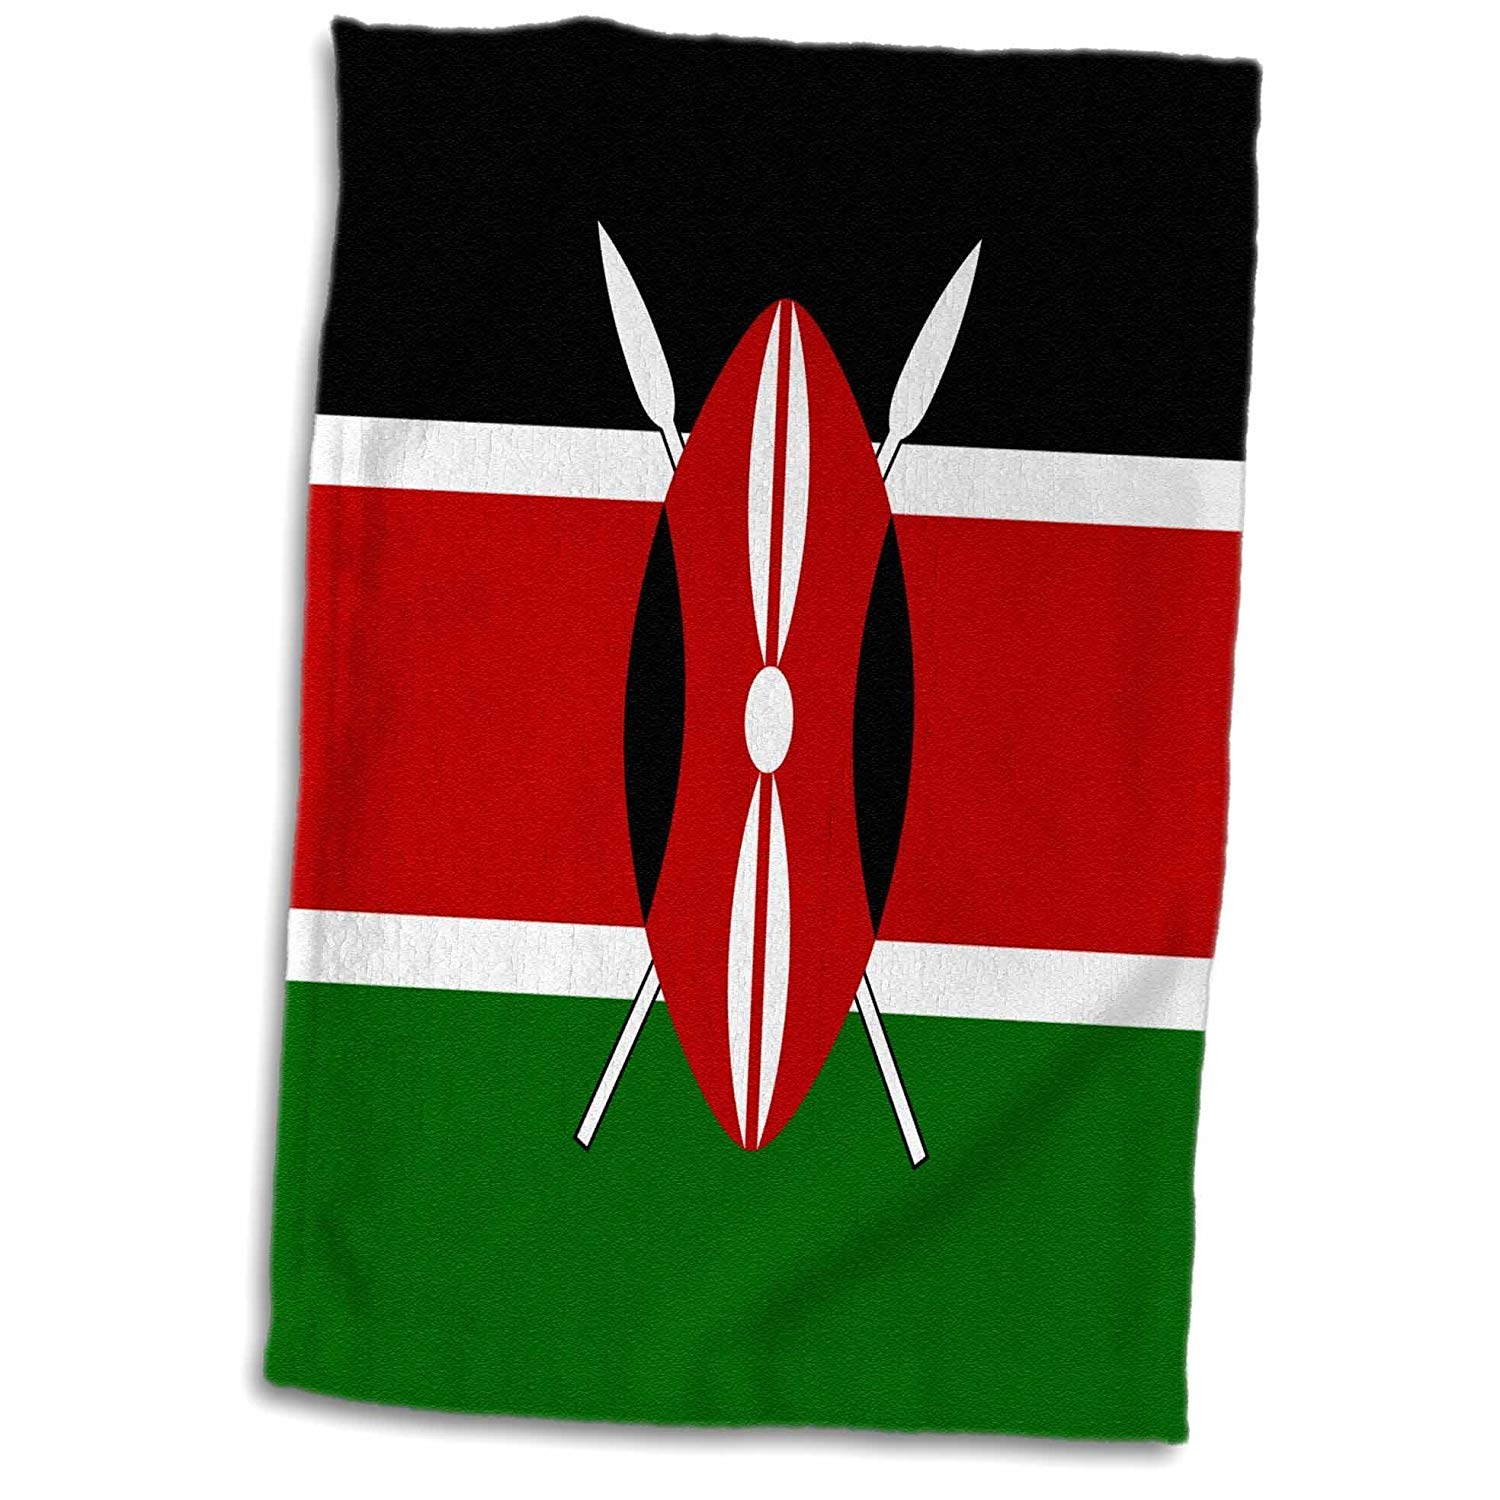 "3D Rose Flag of Kenya-Kenyan Black Red Green with Maasai African Warrior Shield Spears-East Africa World Towel, 15"" x 22"", Multicolor"